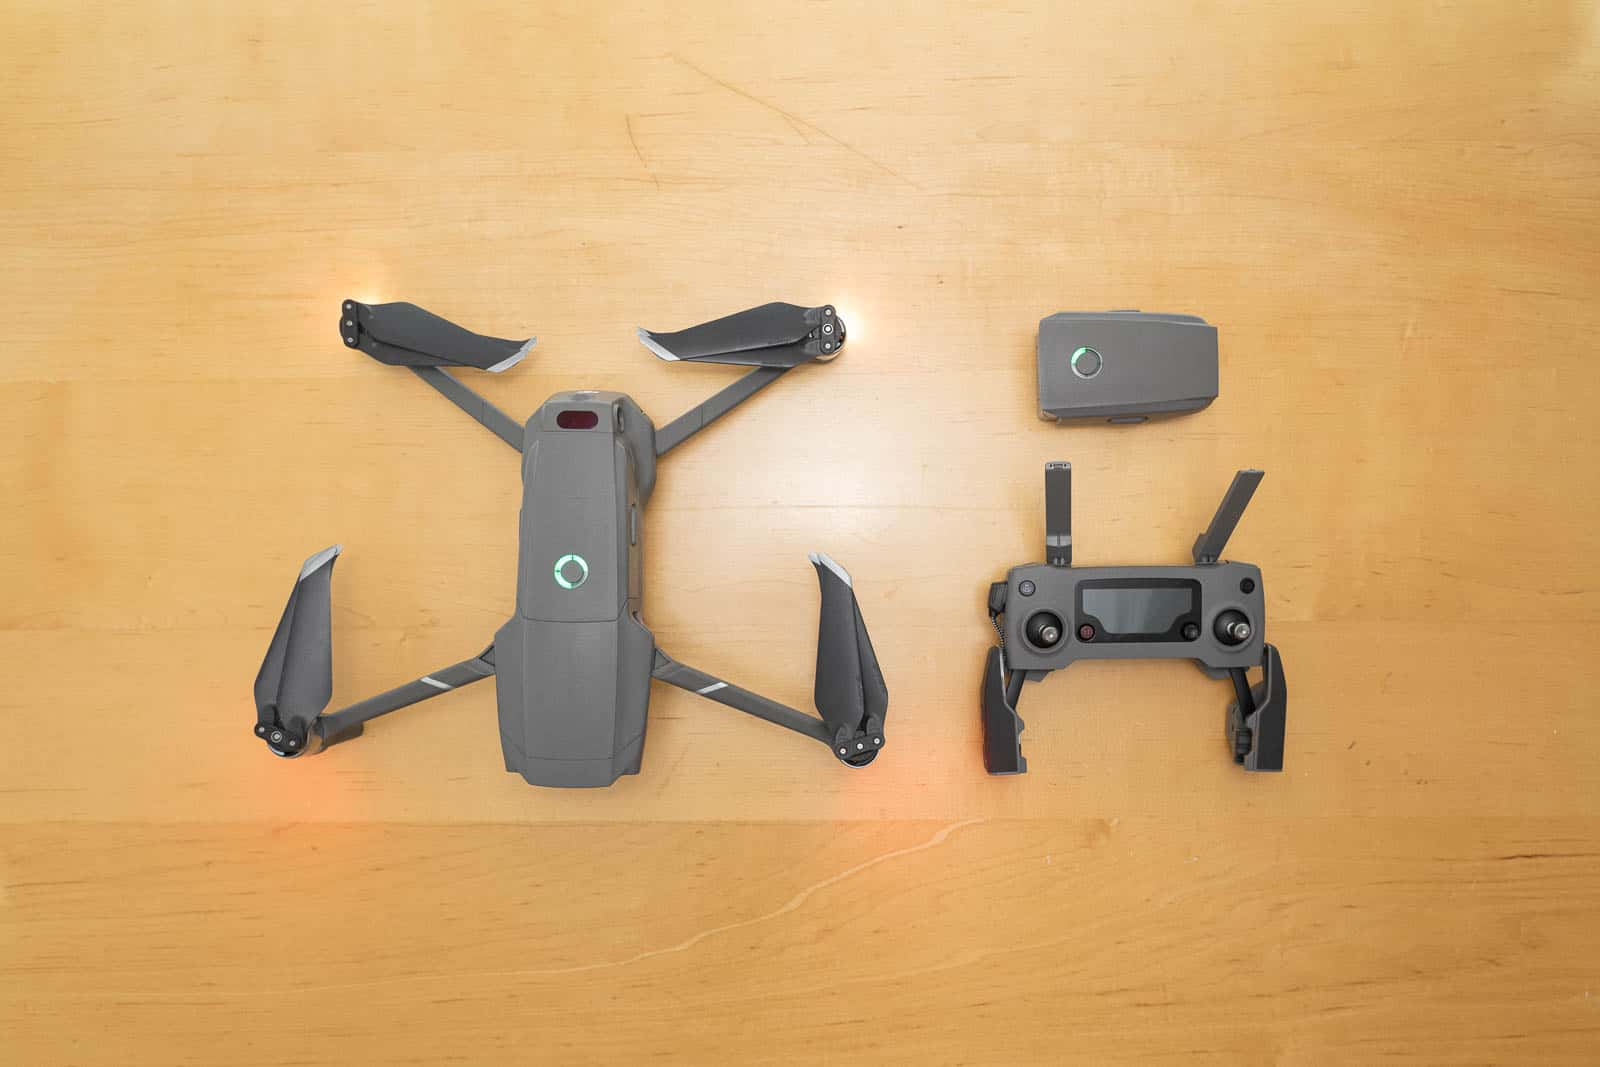 mavic 2 pro drone next to battery and remote controller